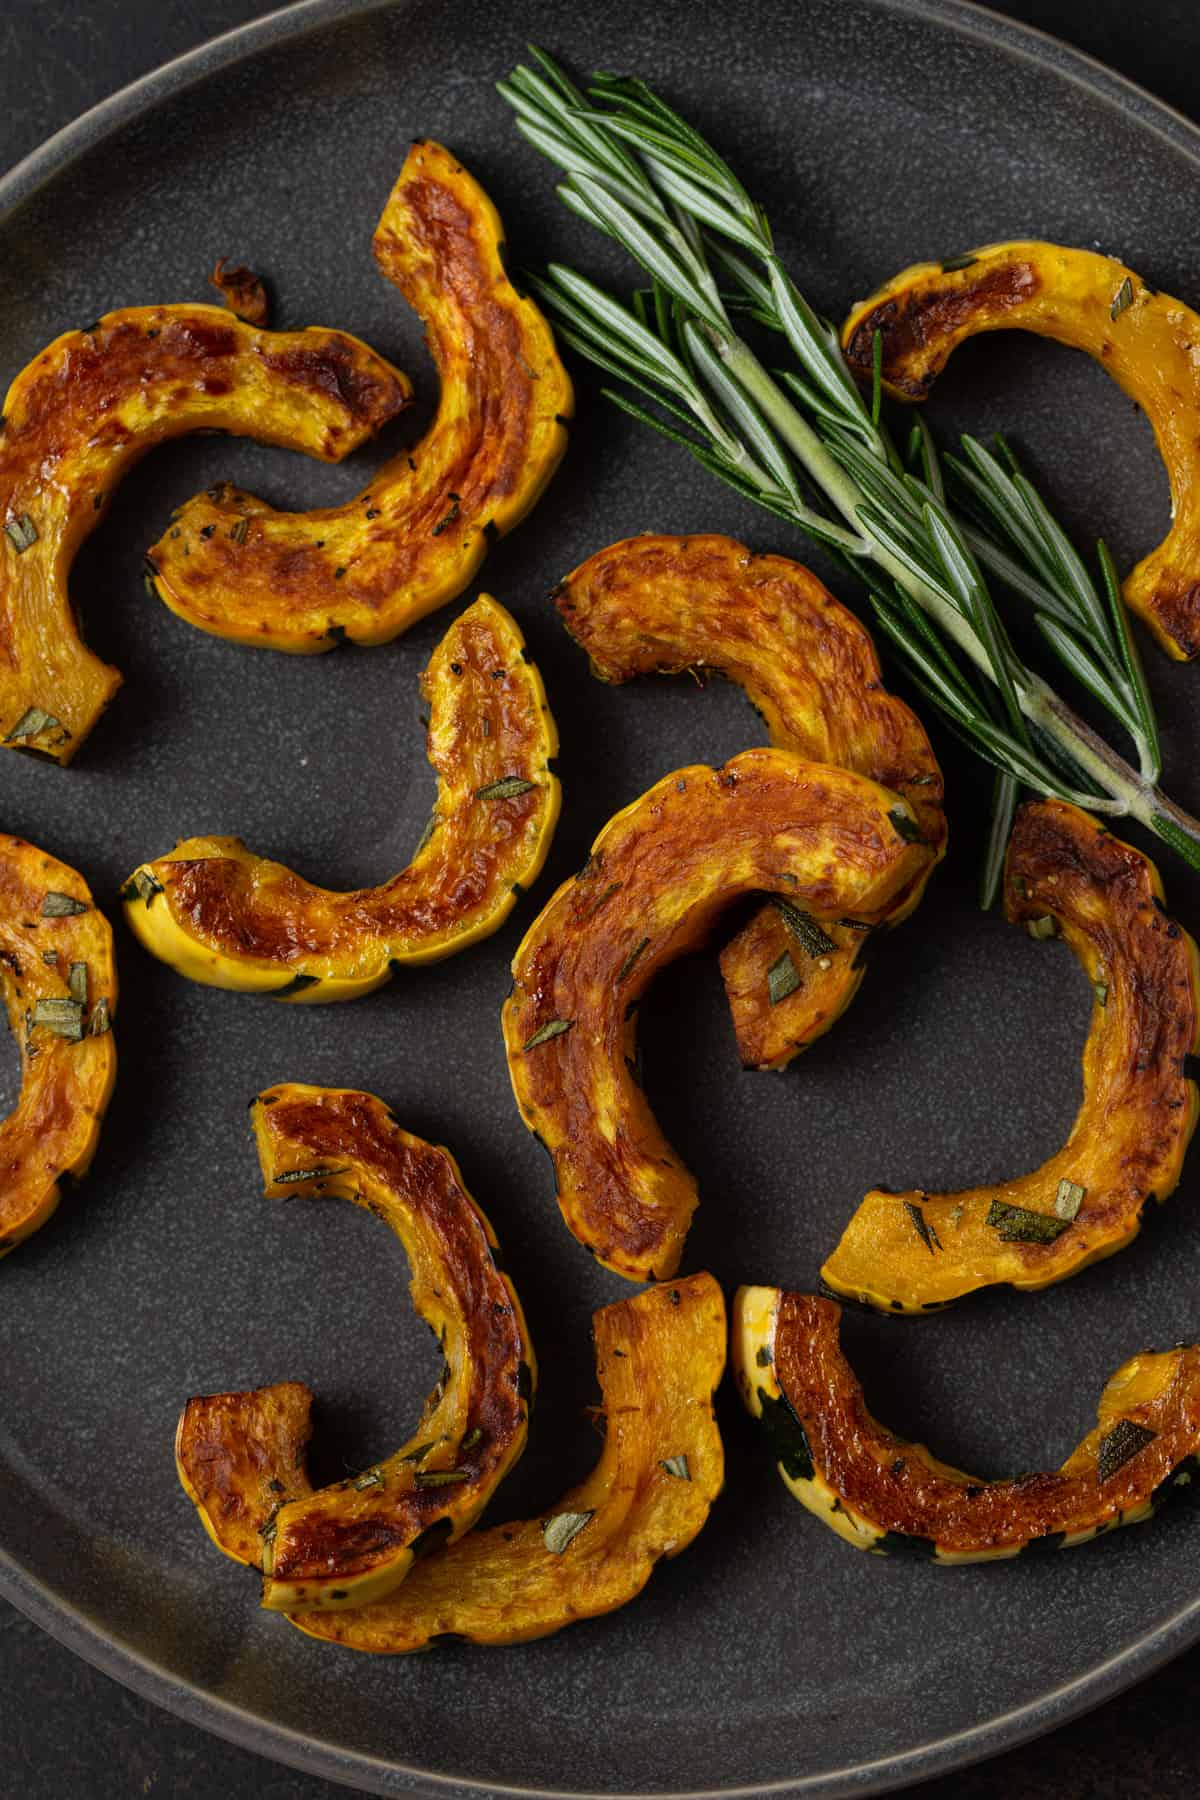 roasted delicata squash pieces on a dark plate with fresh rosemary